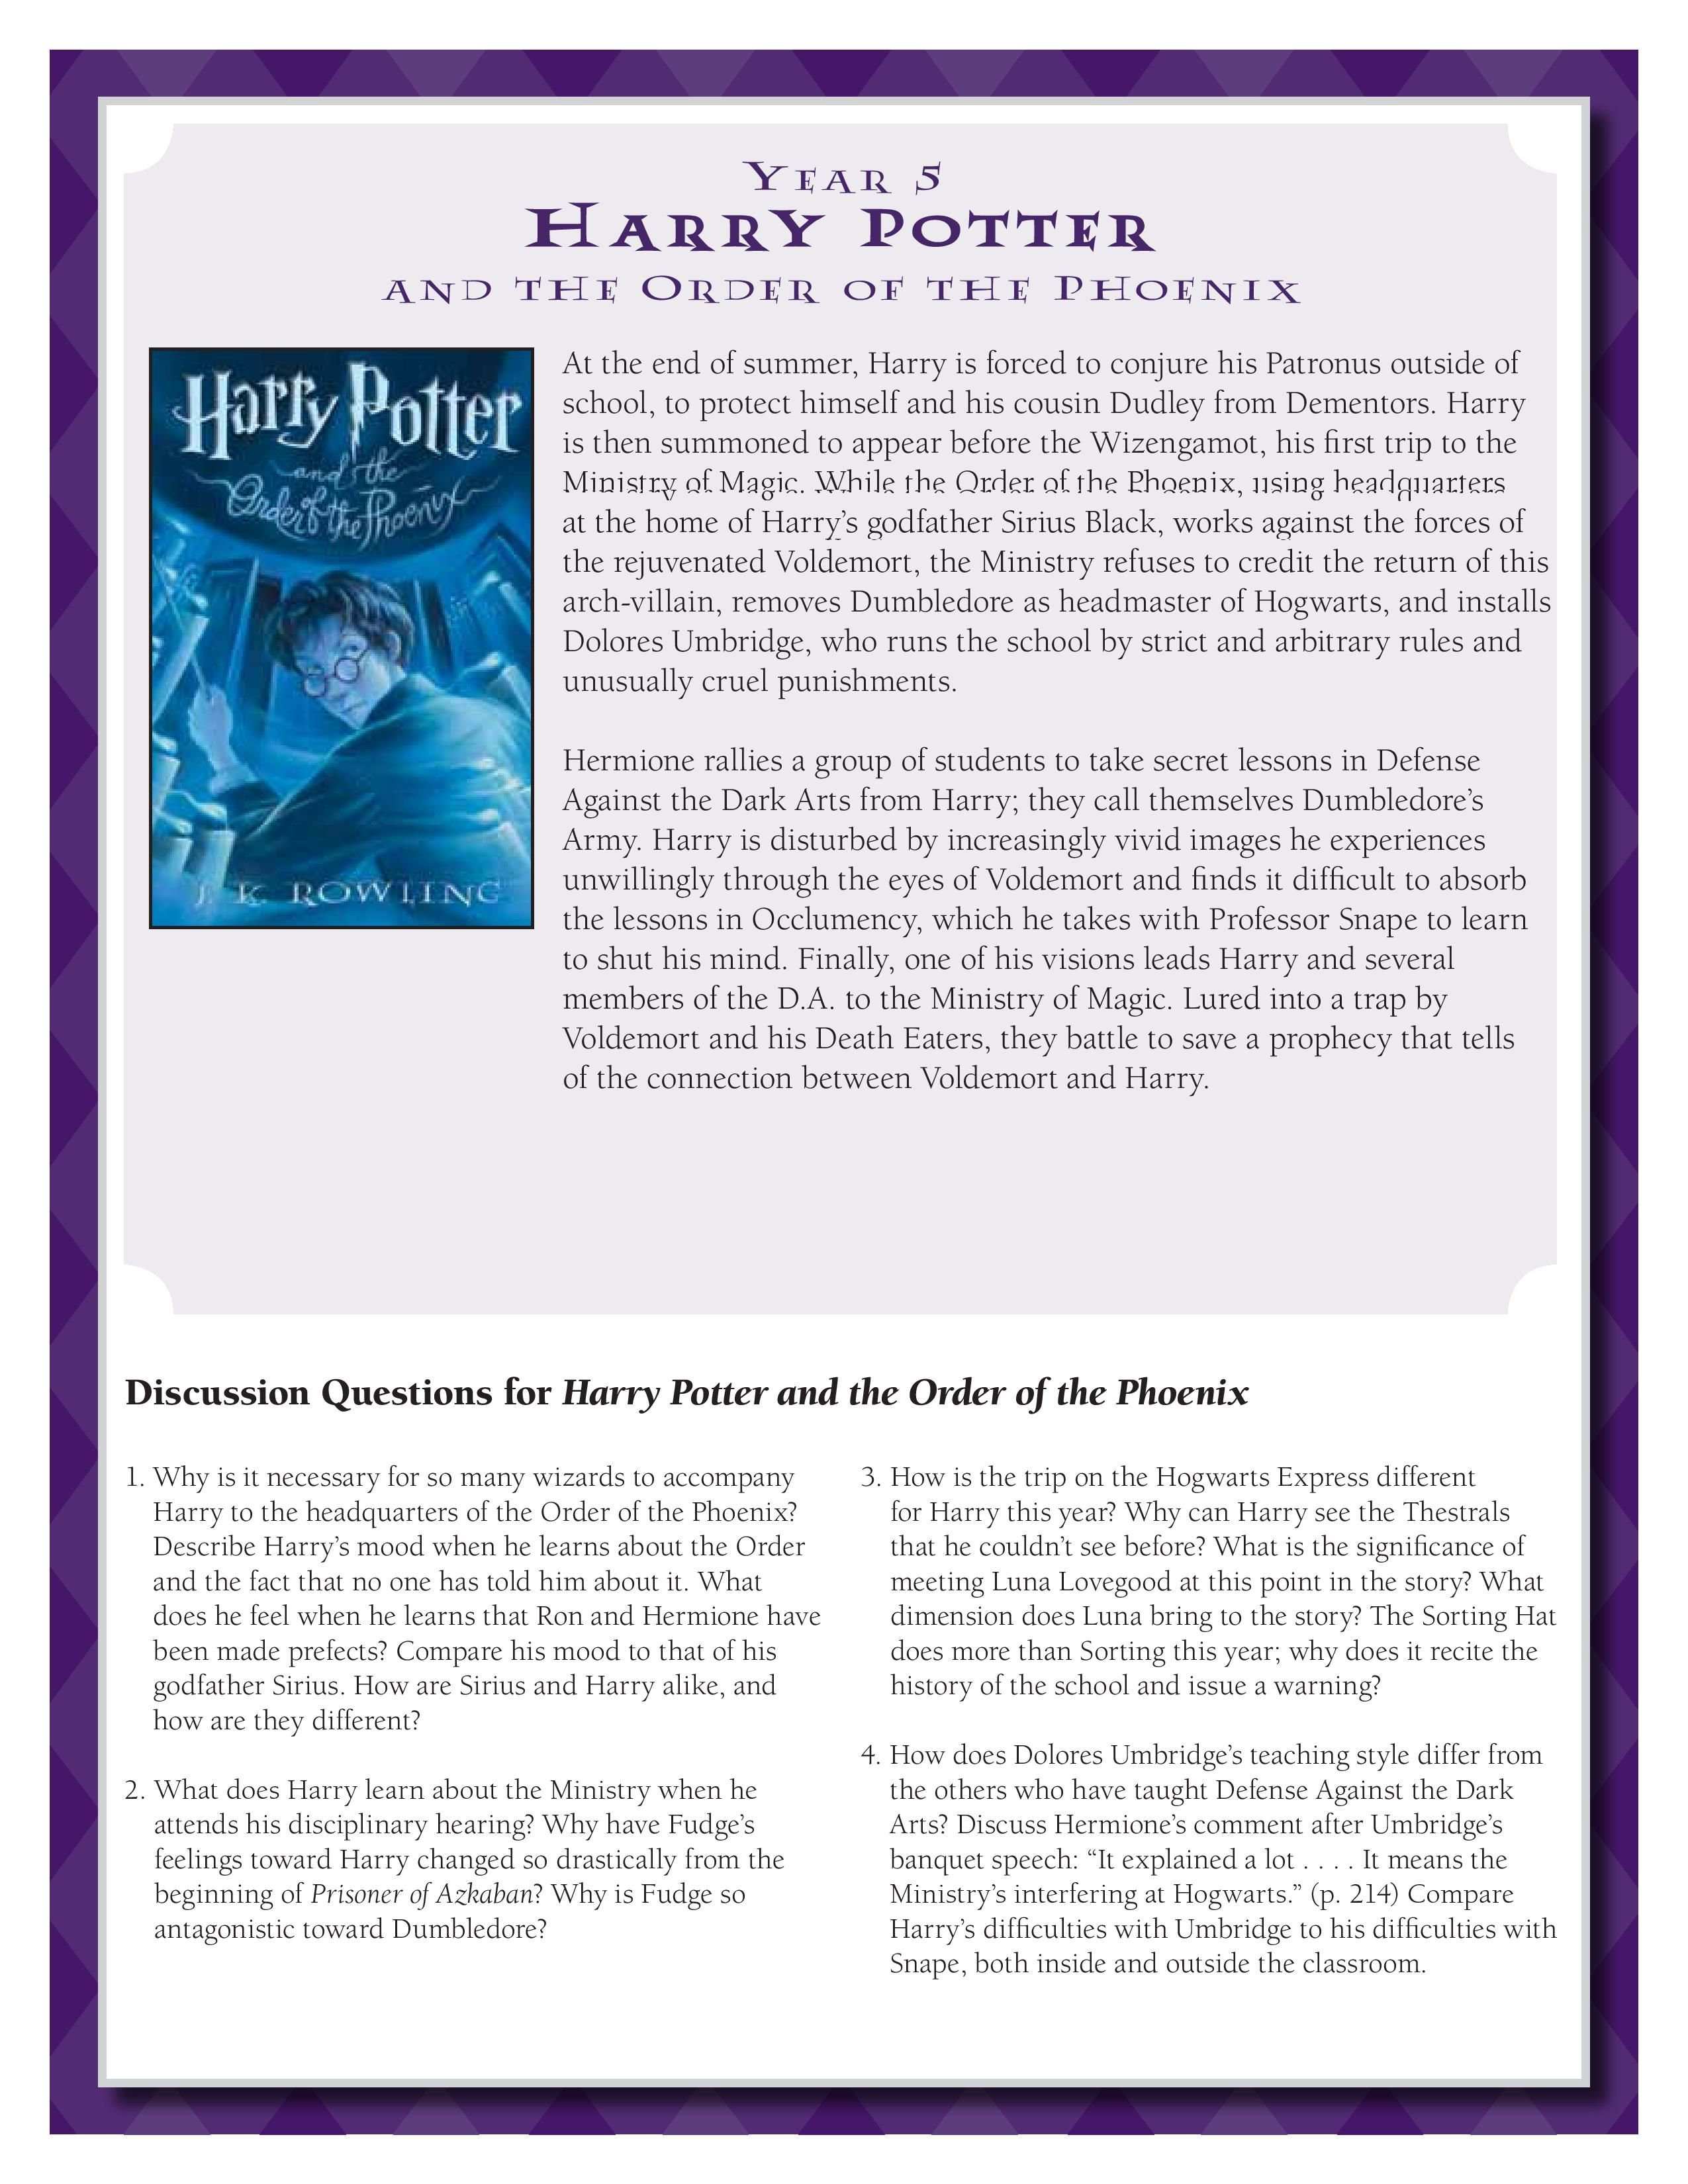 Discussion Guide For Harry Potter And The Order Of The Phoenix By J K Rowling Download Harry Potter Lessons Harry Potter Classroom Harry Potter Unit Study